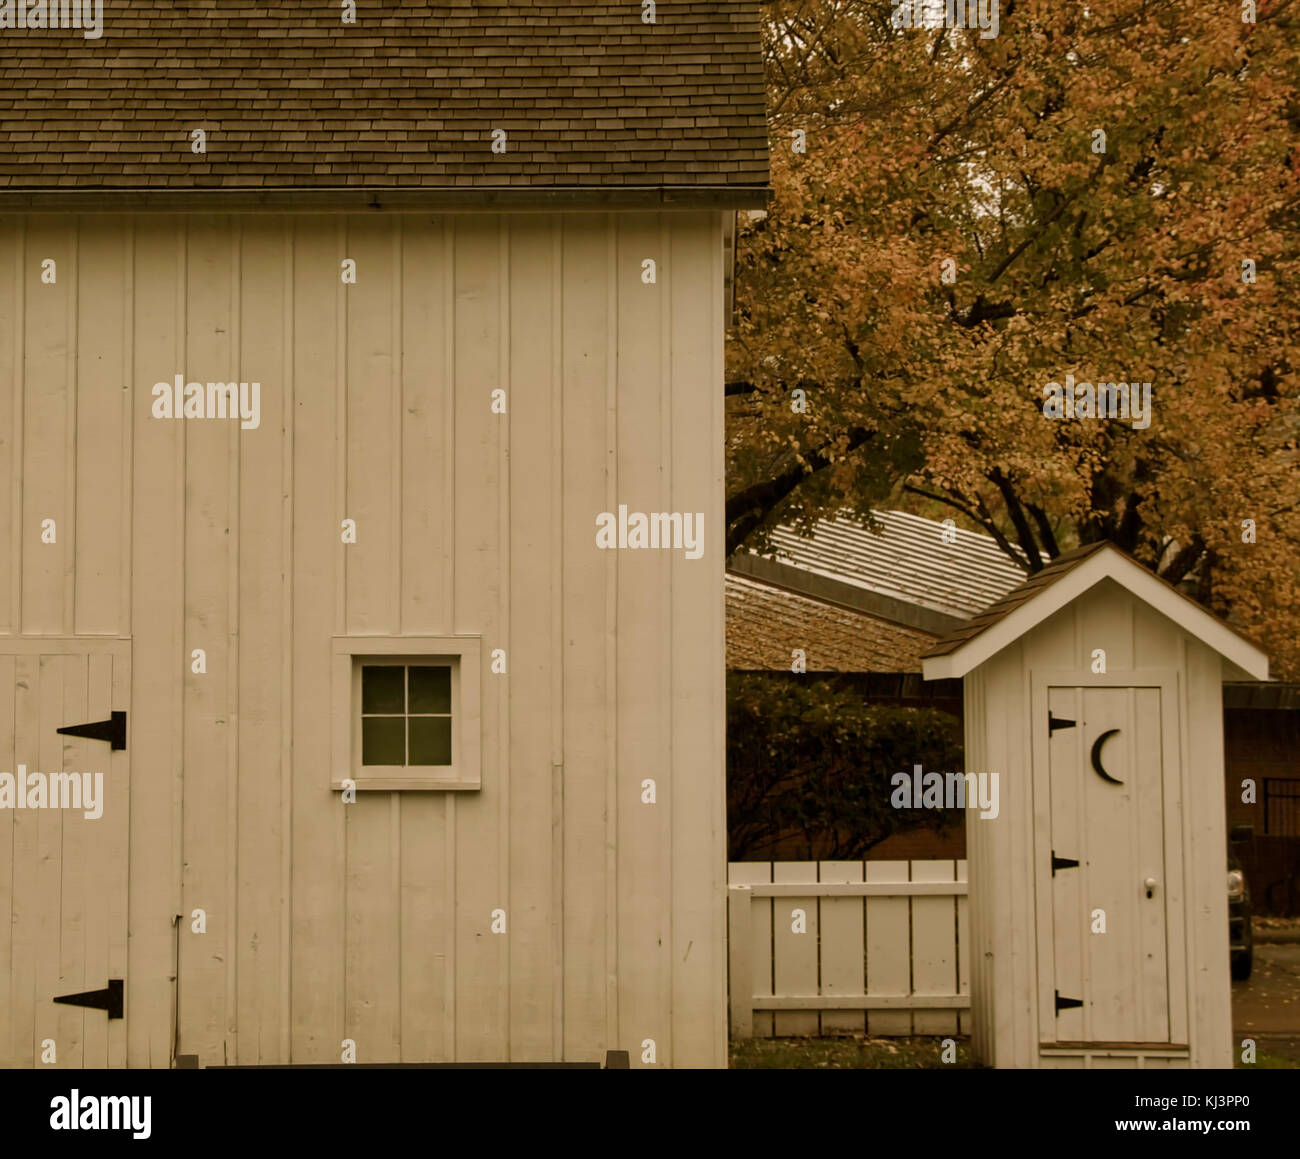 Out House in Springfield, Illinois - Stock Image